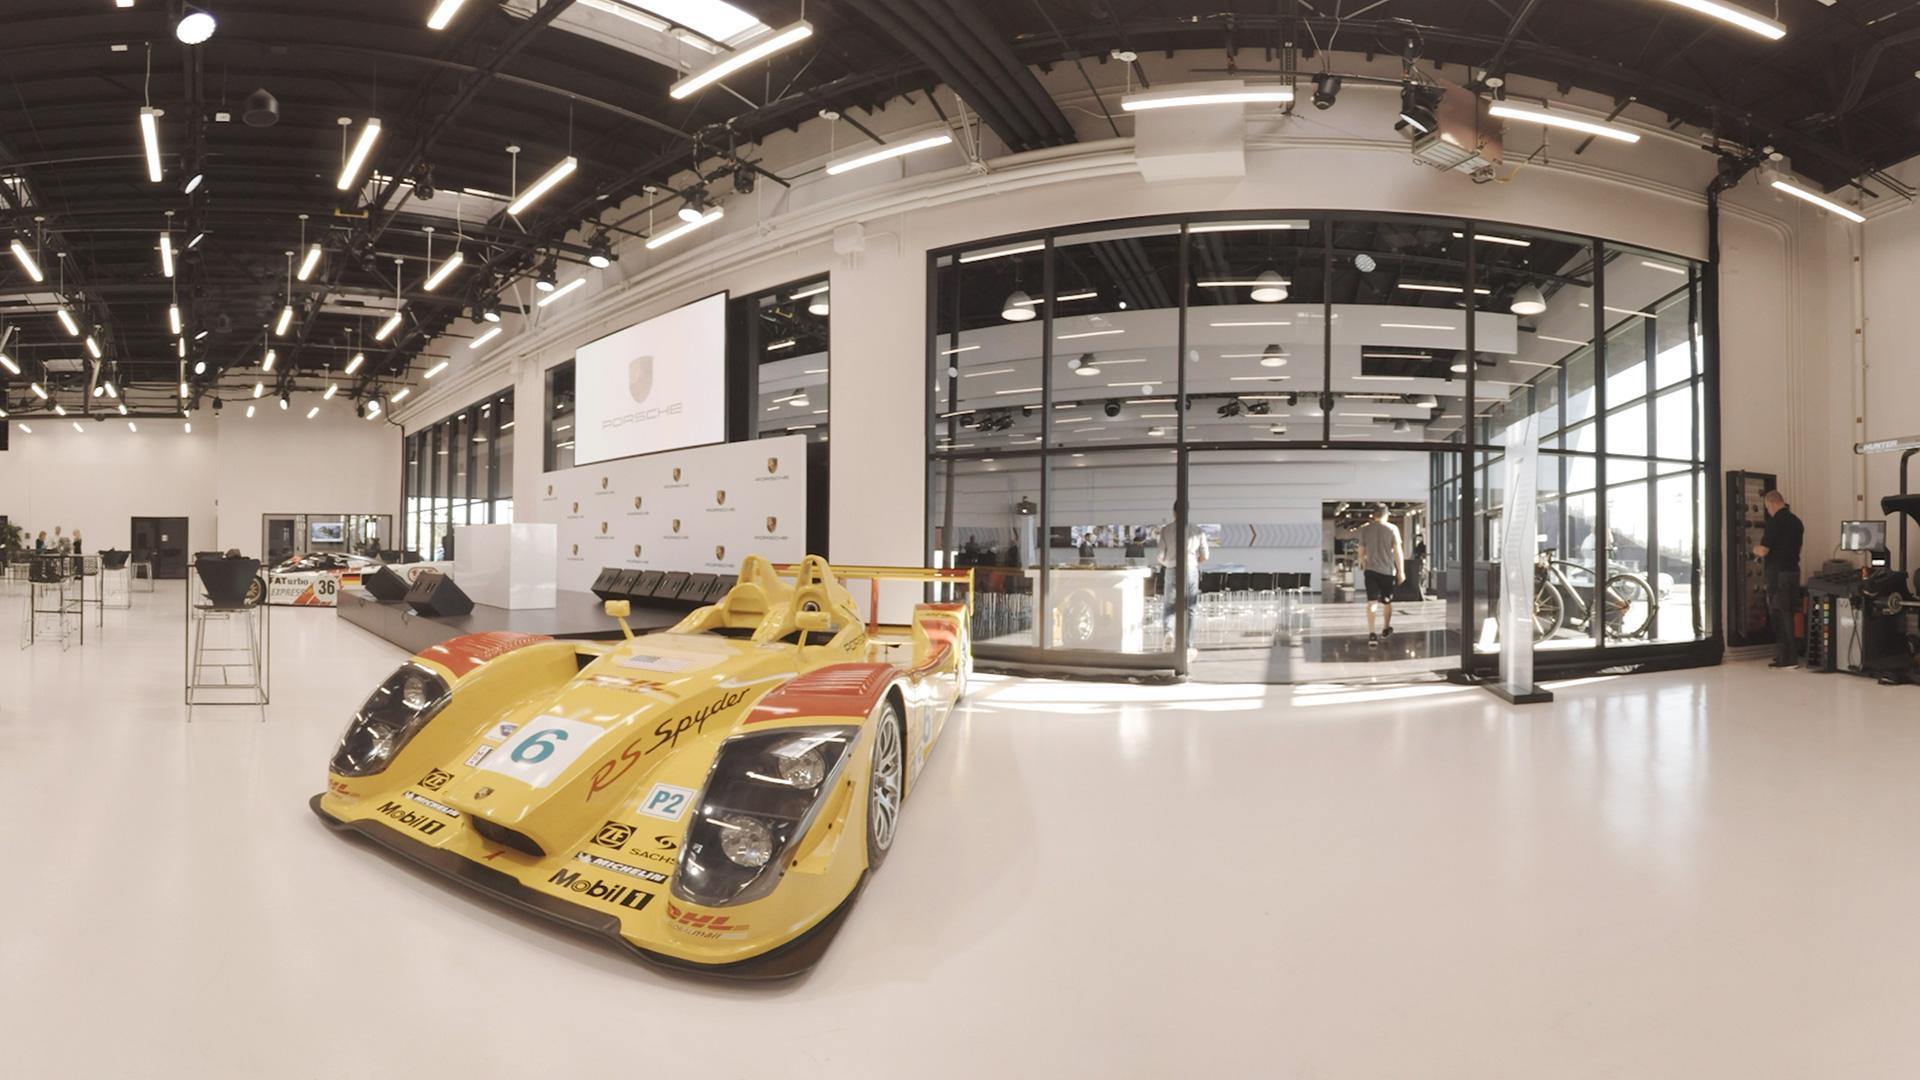 Visiting the Porsche Experience Center in Los Angeles